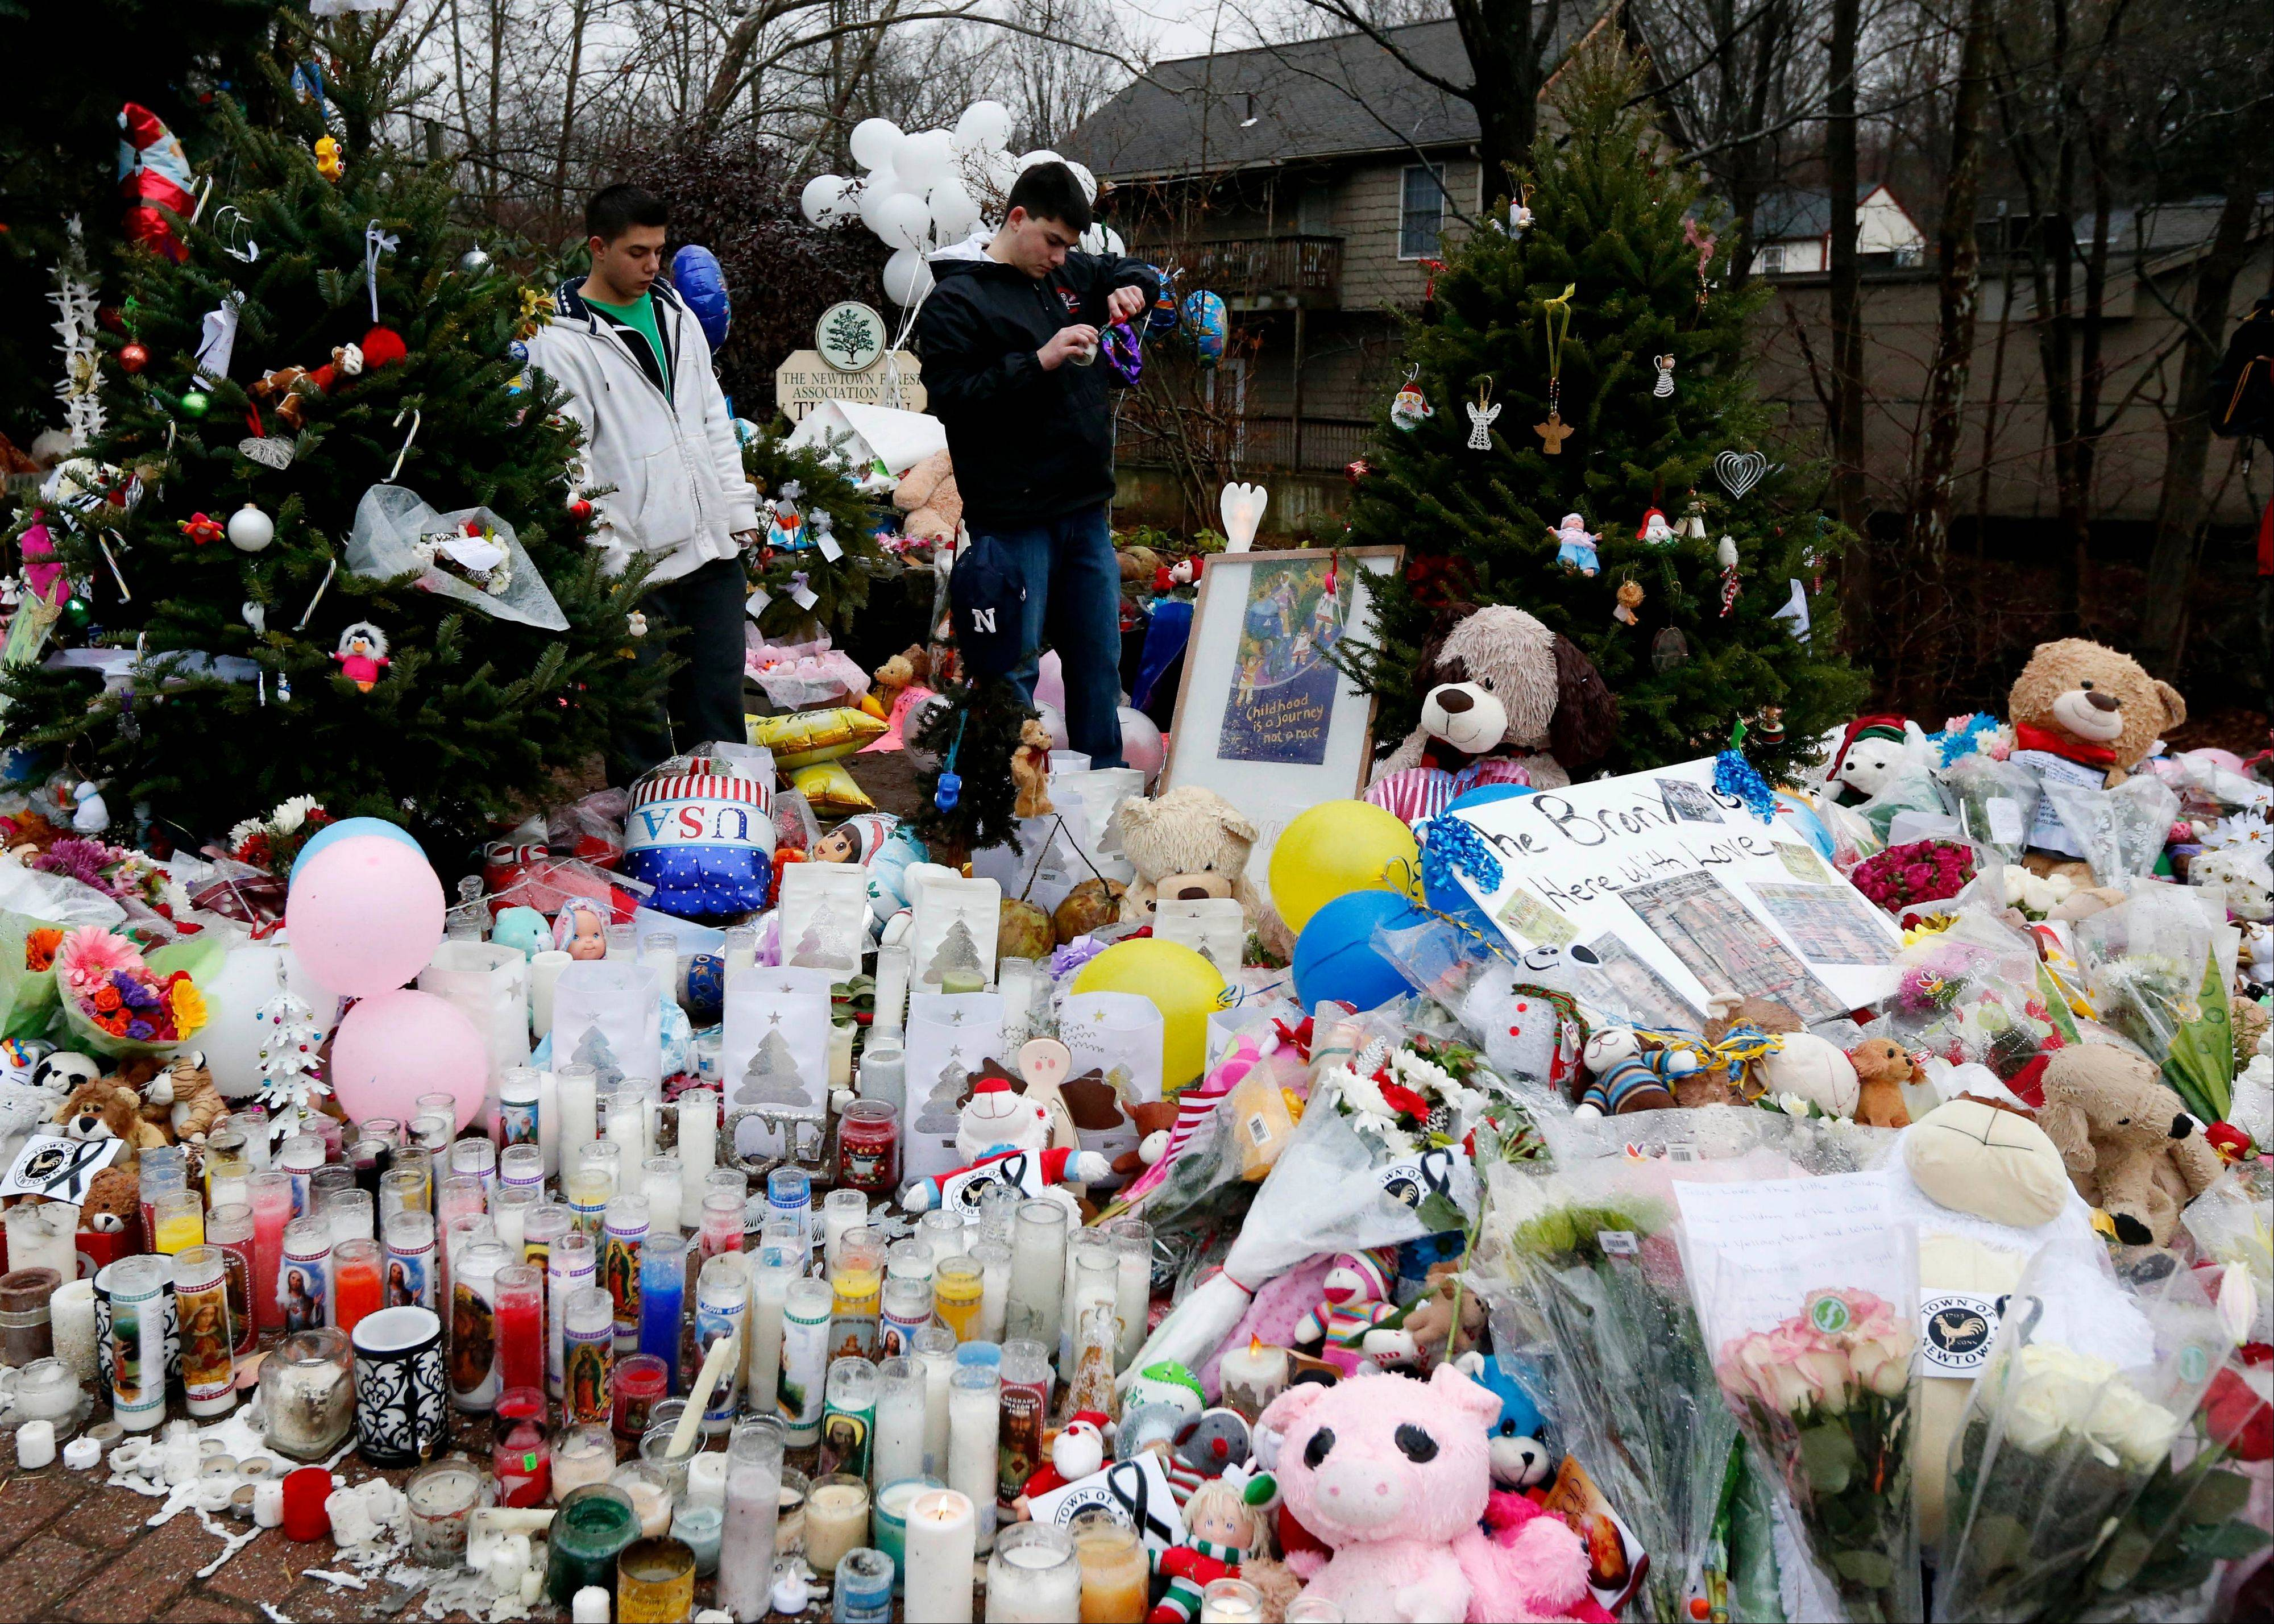 Ryan Bartolotta, 17, right, and Ray Massi, 18, light candles that were put out by rain at a makeshift memorial in Newtown, Conn., as the town mourns victims killed at Sandy Hook Elementary School.